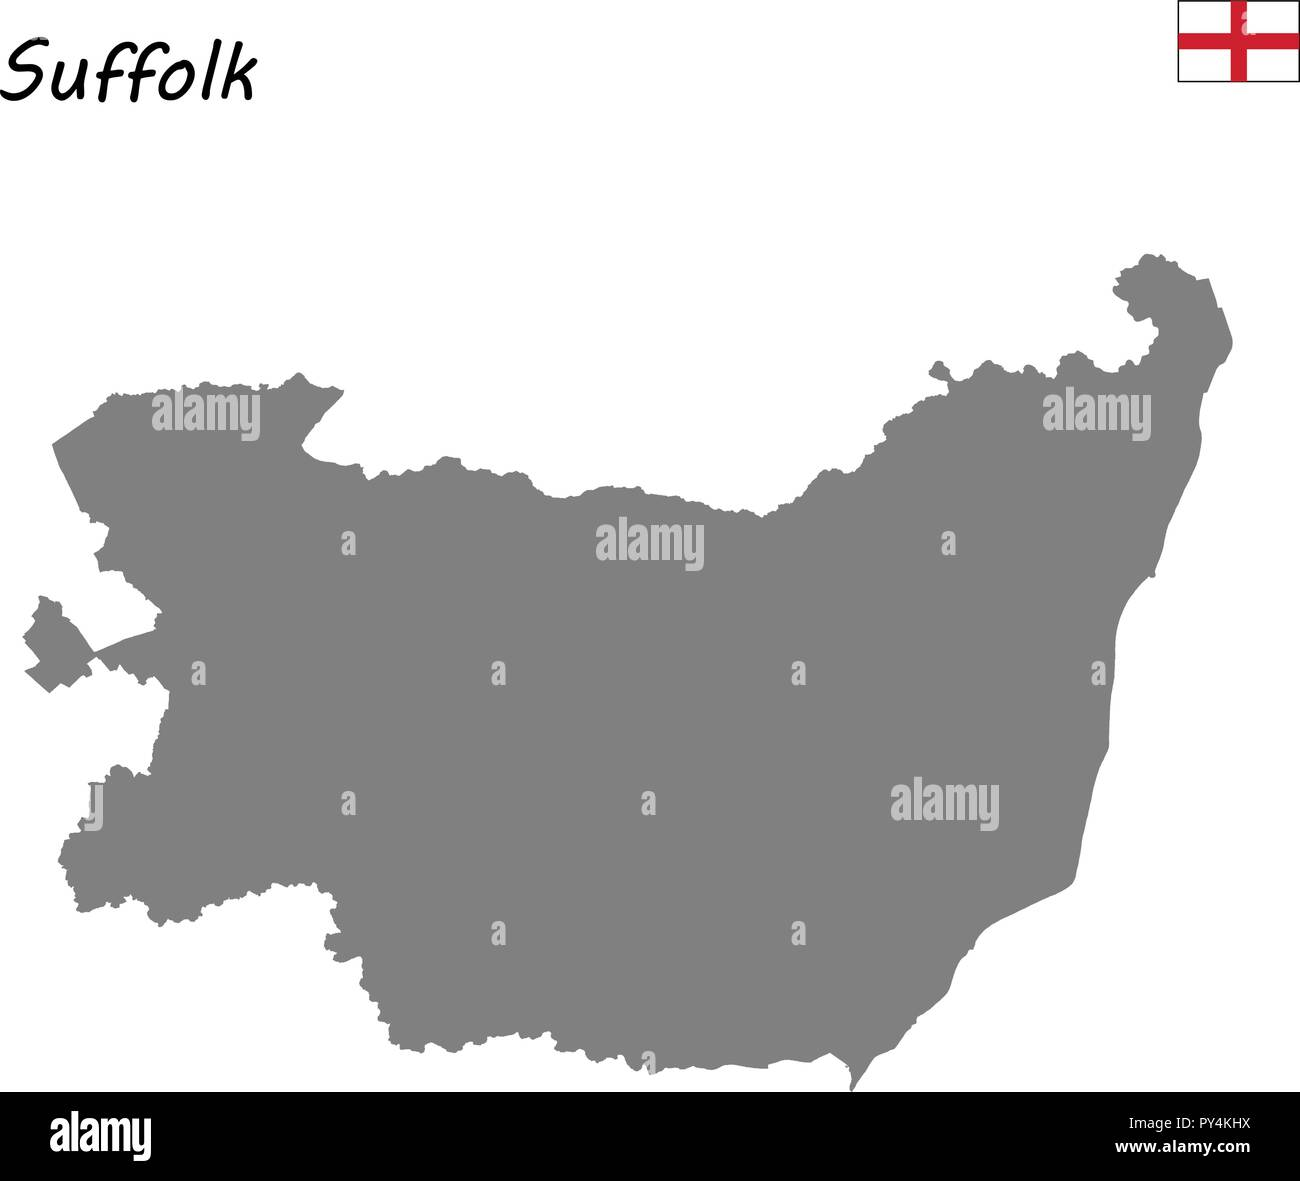 Suffolk County England Map.High Quality Map Is A Ceremonial County Of England Suffolk Stock